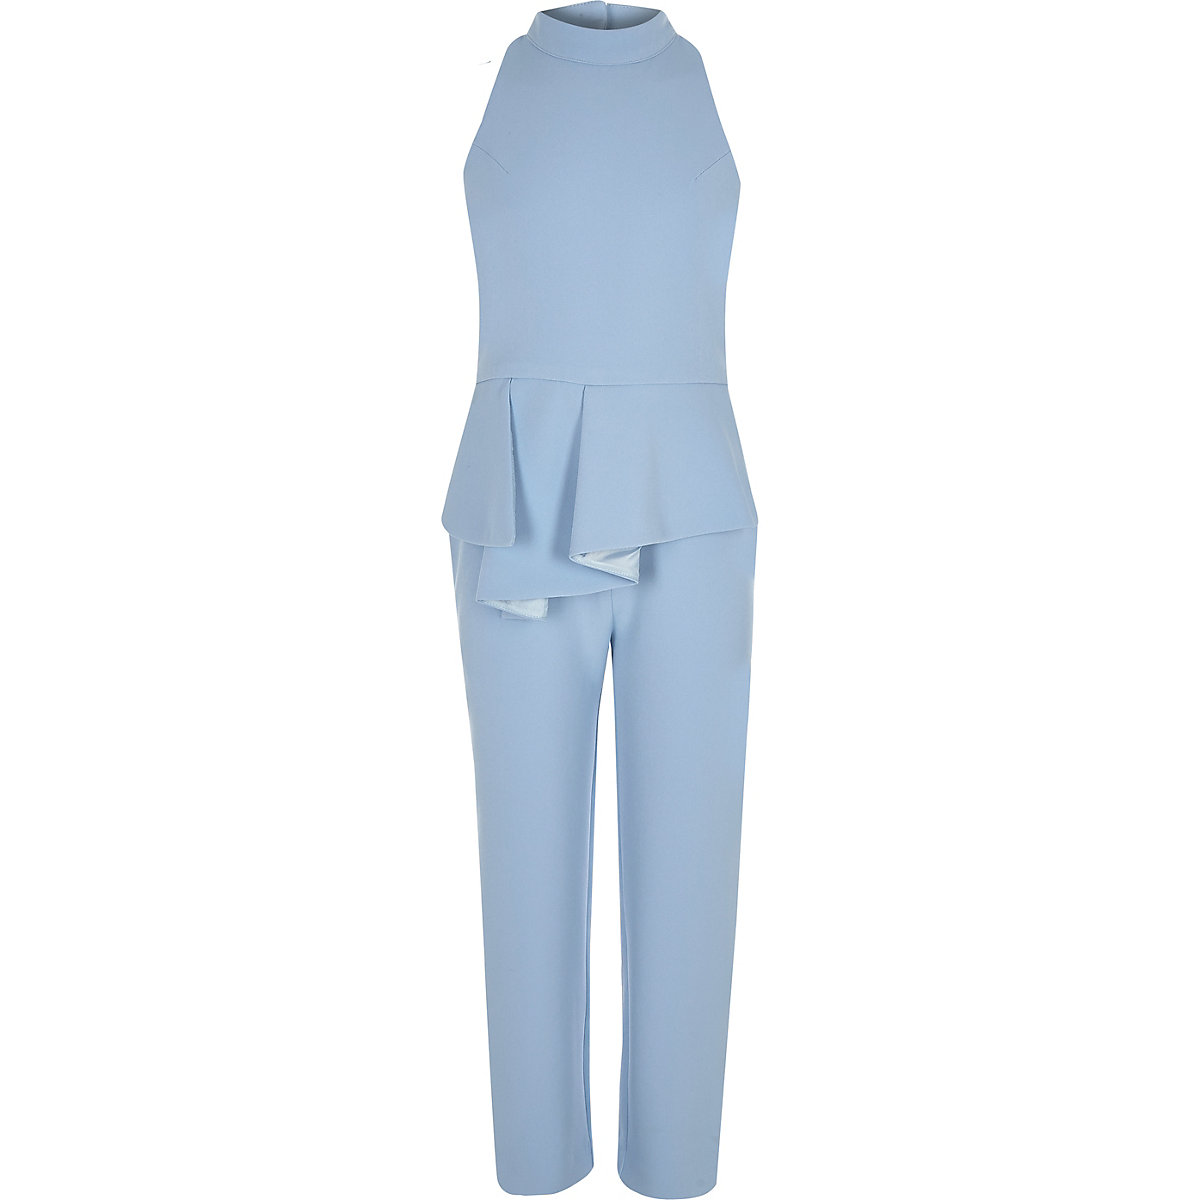 Girls blue peplum halter neck jumpsuit